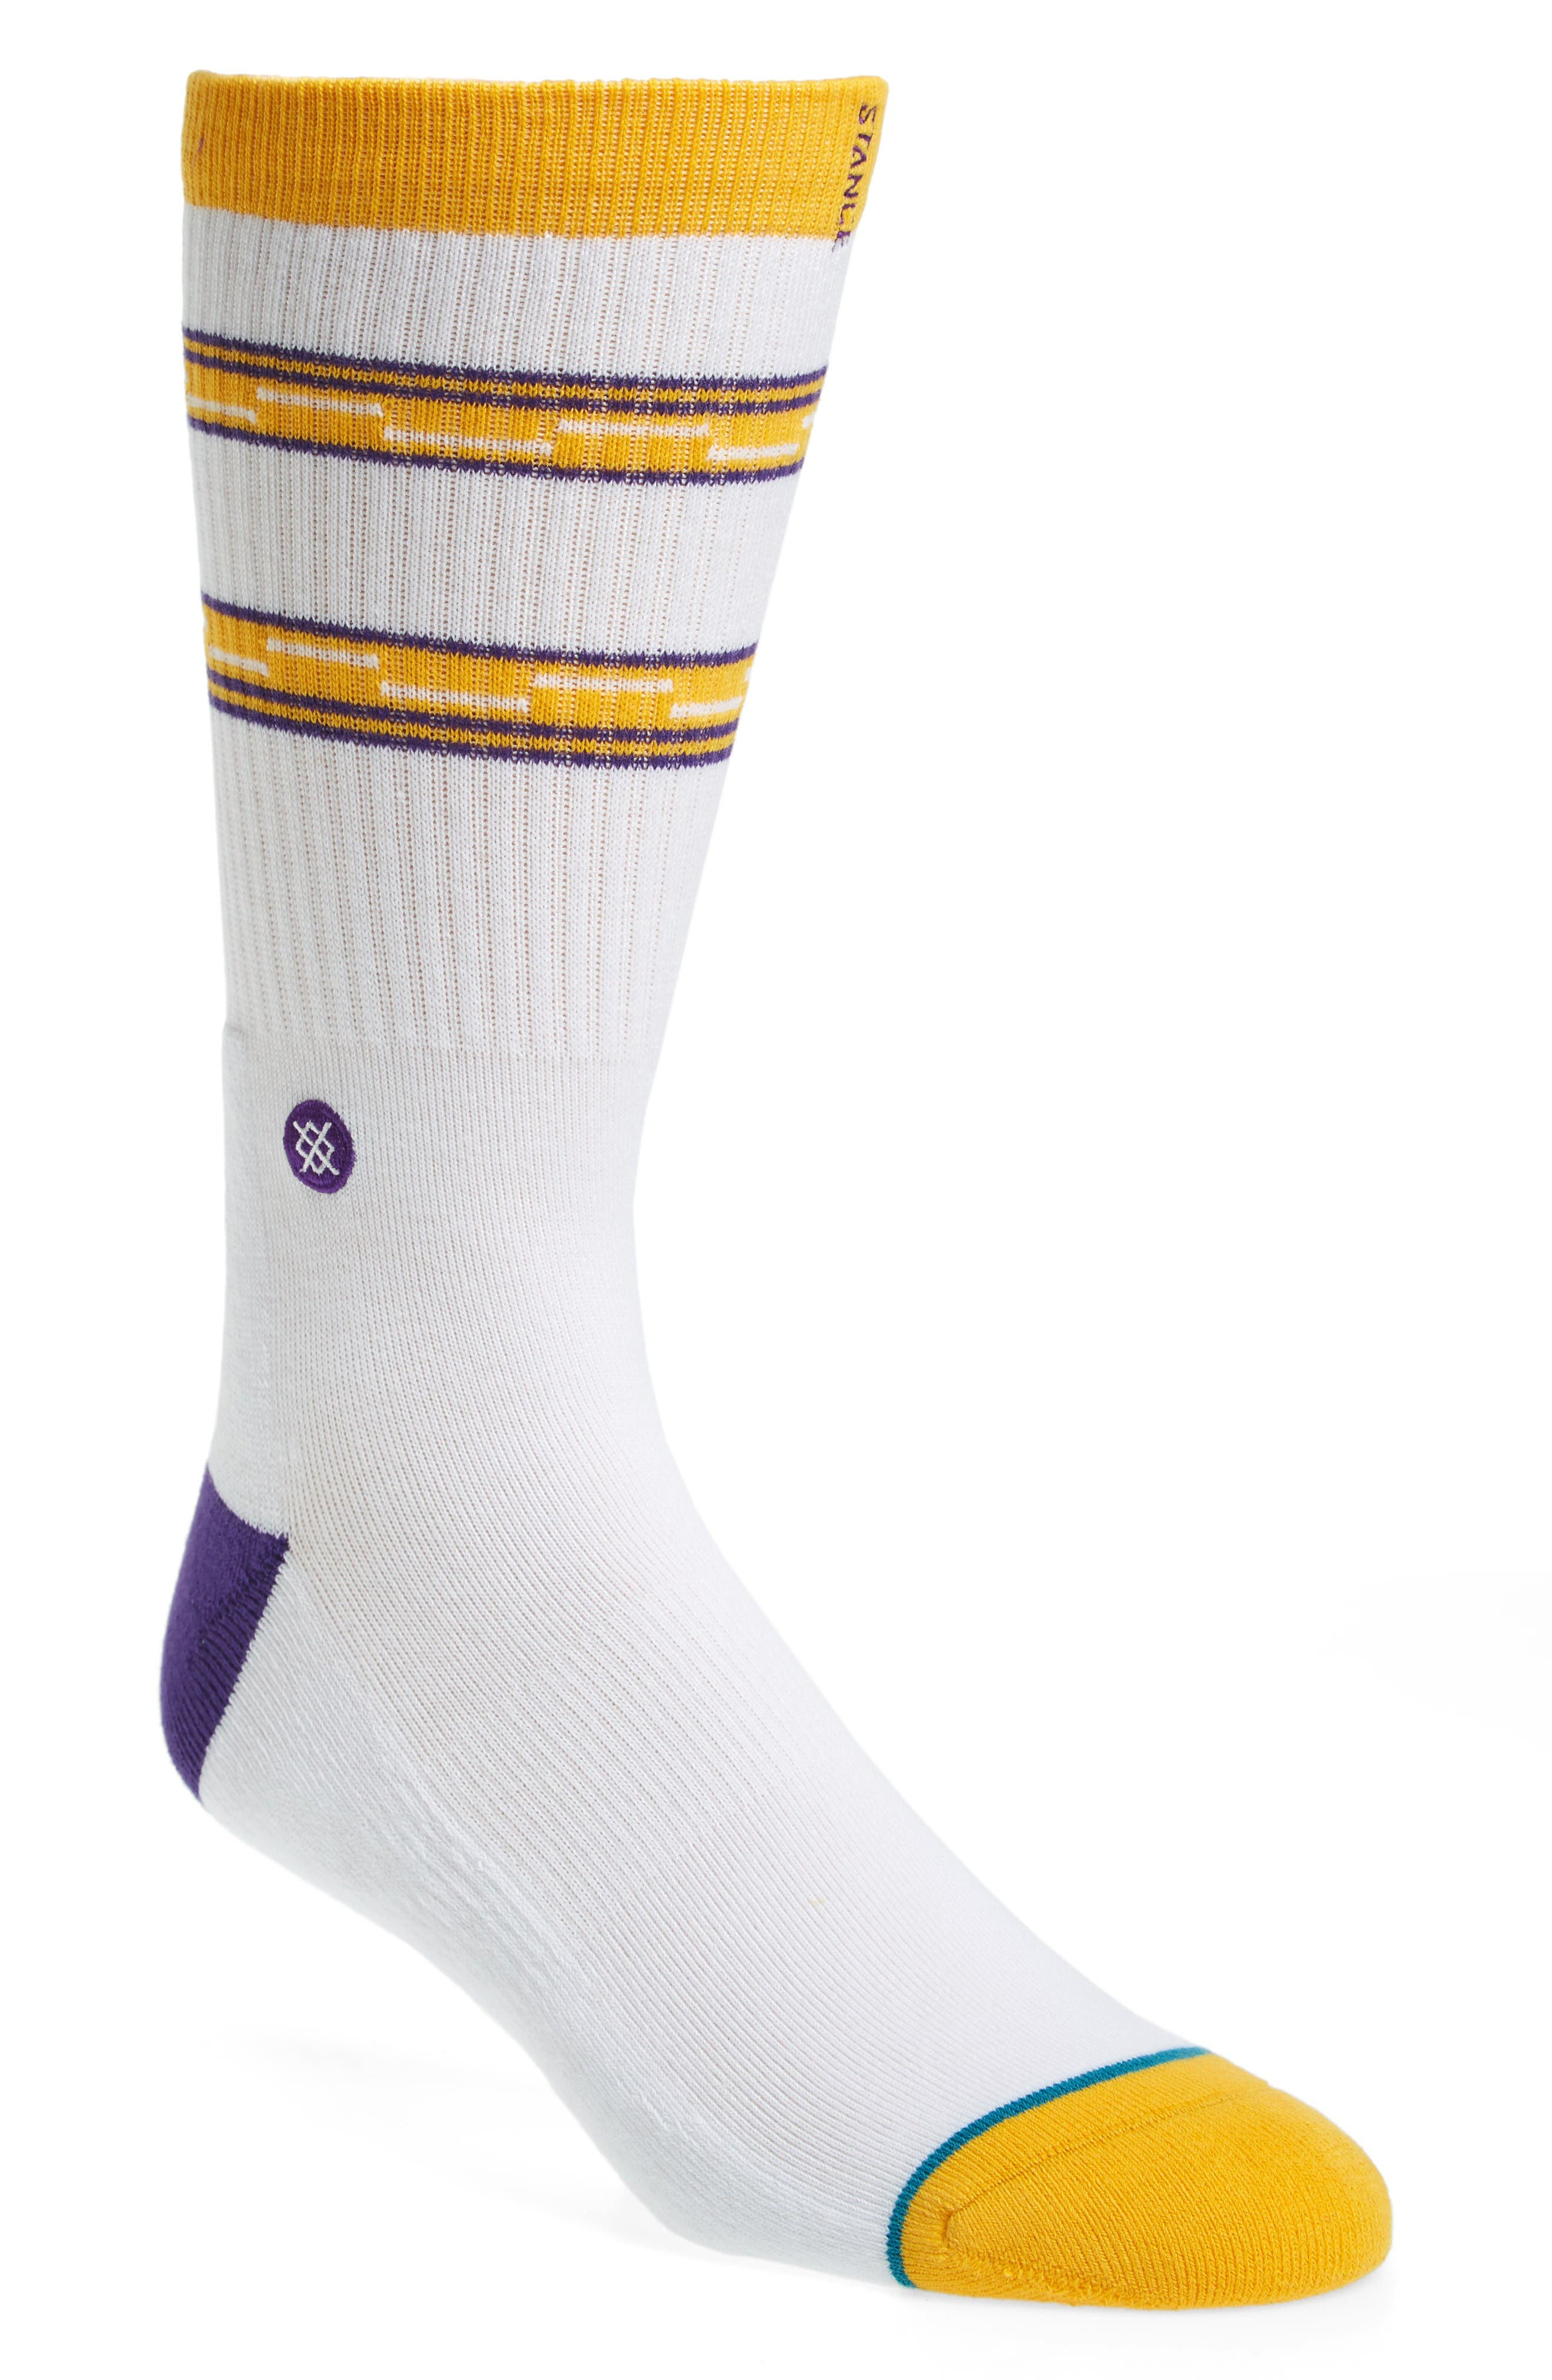 Main Image - Stance Los Angeles Lakers Arena Core Socks